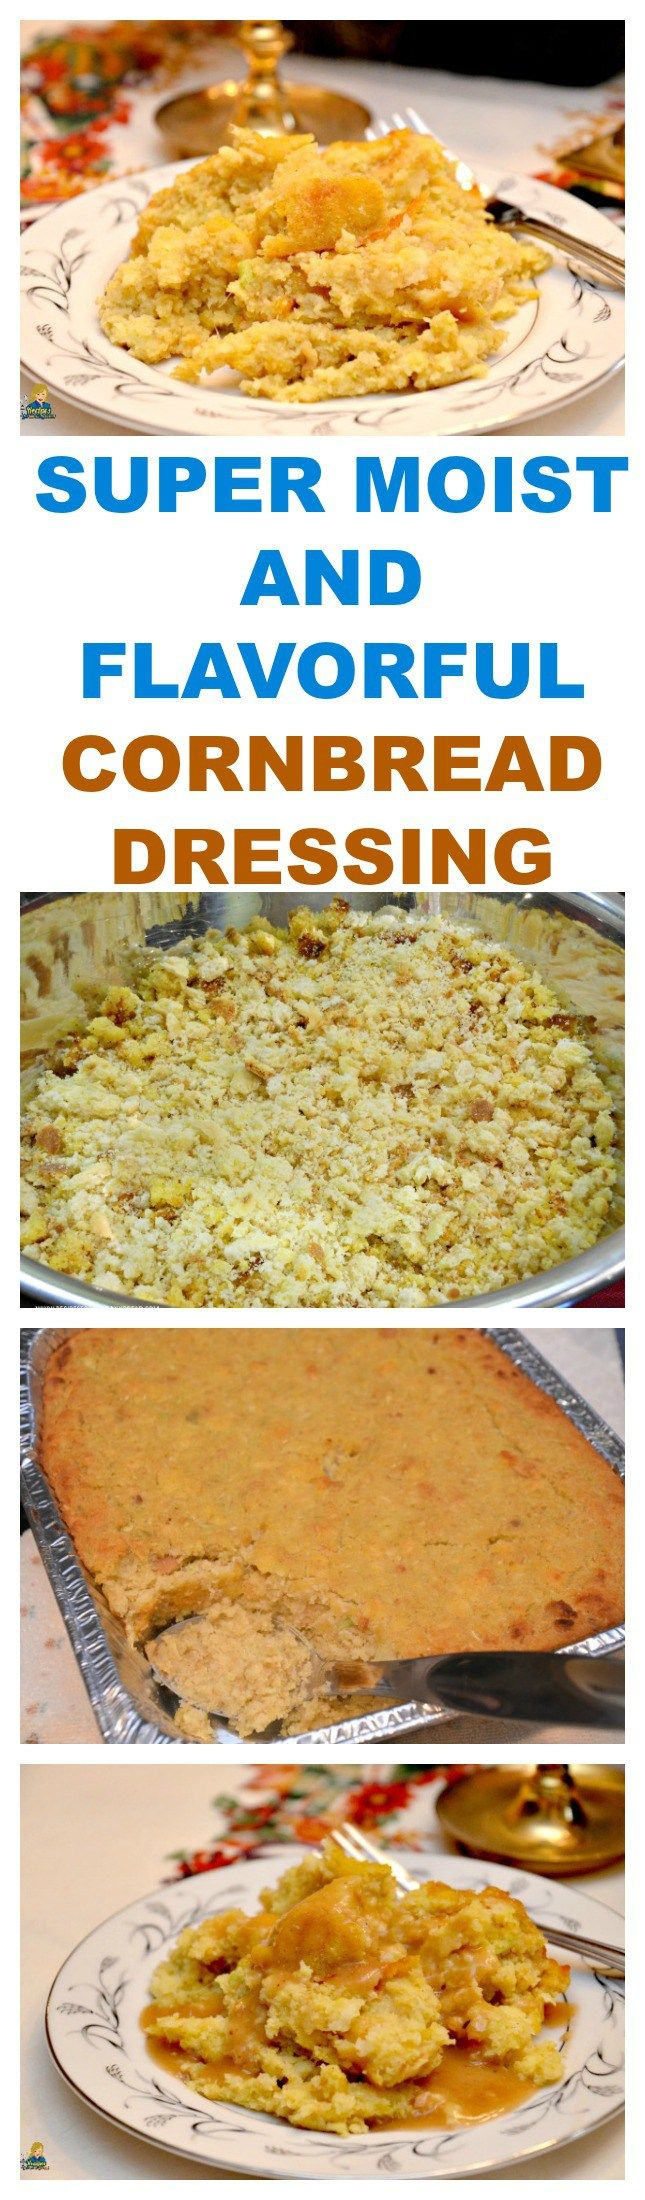 SUPER MOIST AND FLAVORFUL CORNBREAD DRESSING  SEE RECIPE HERE: http://recipesforourdailybread.com/best-moist-cornbread-dressing/